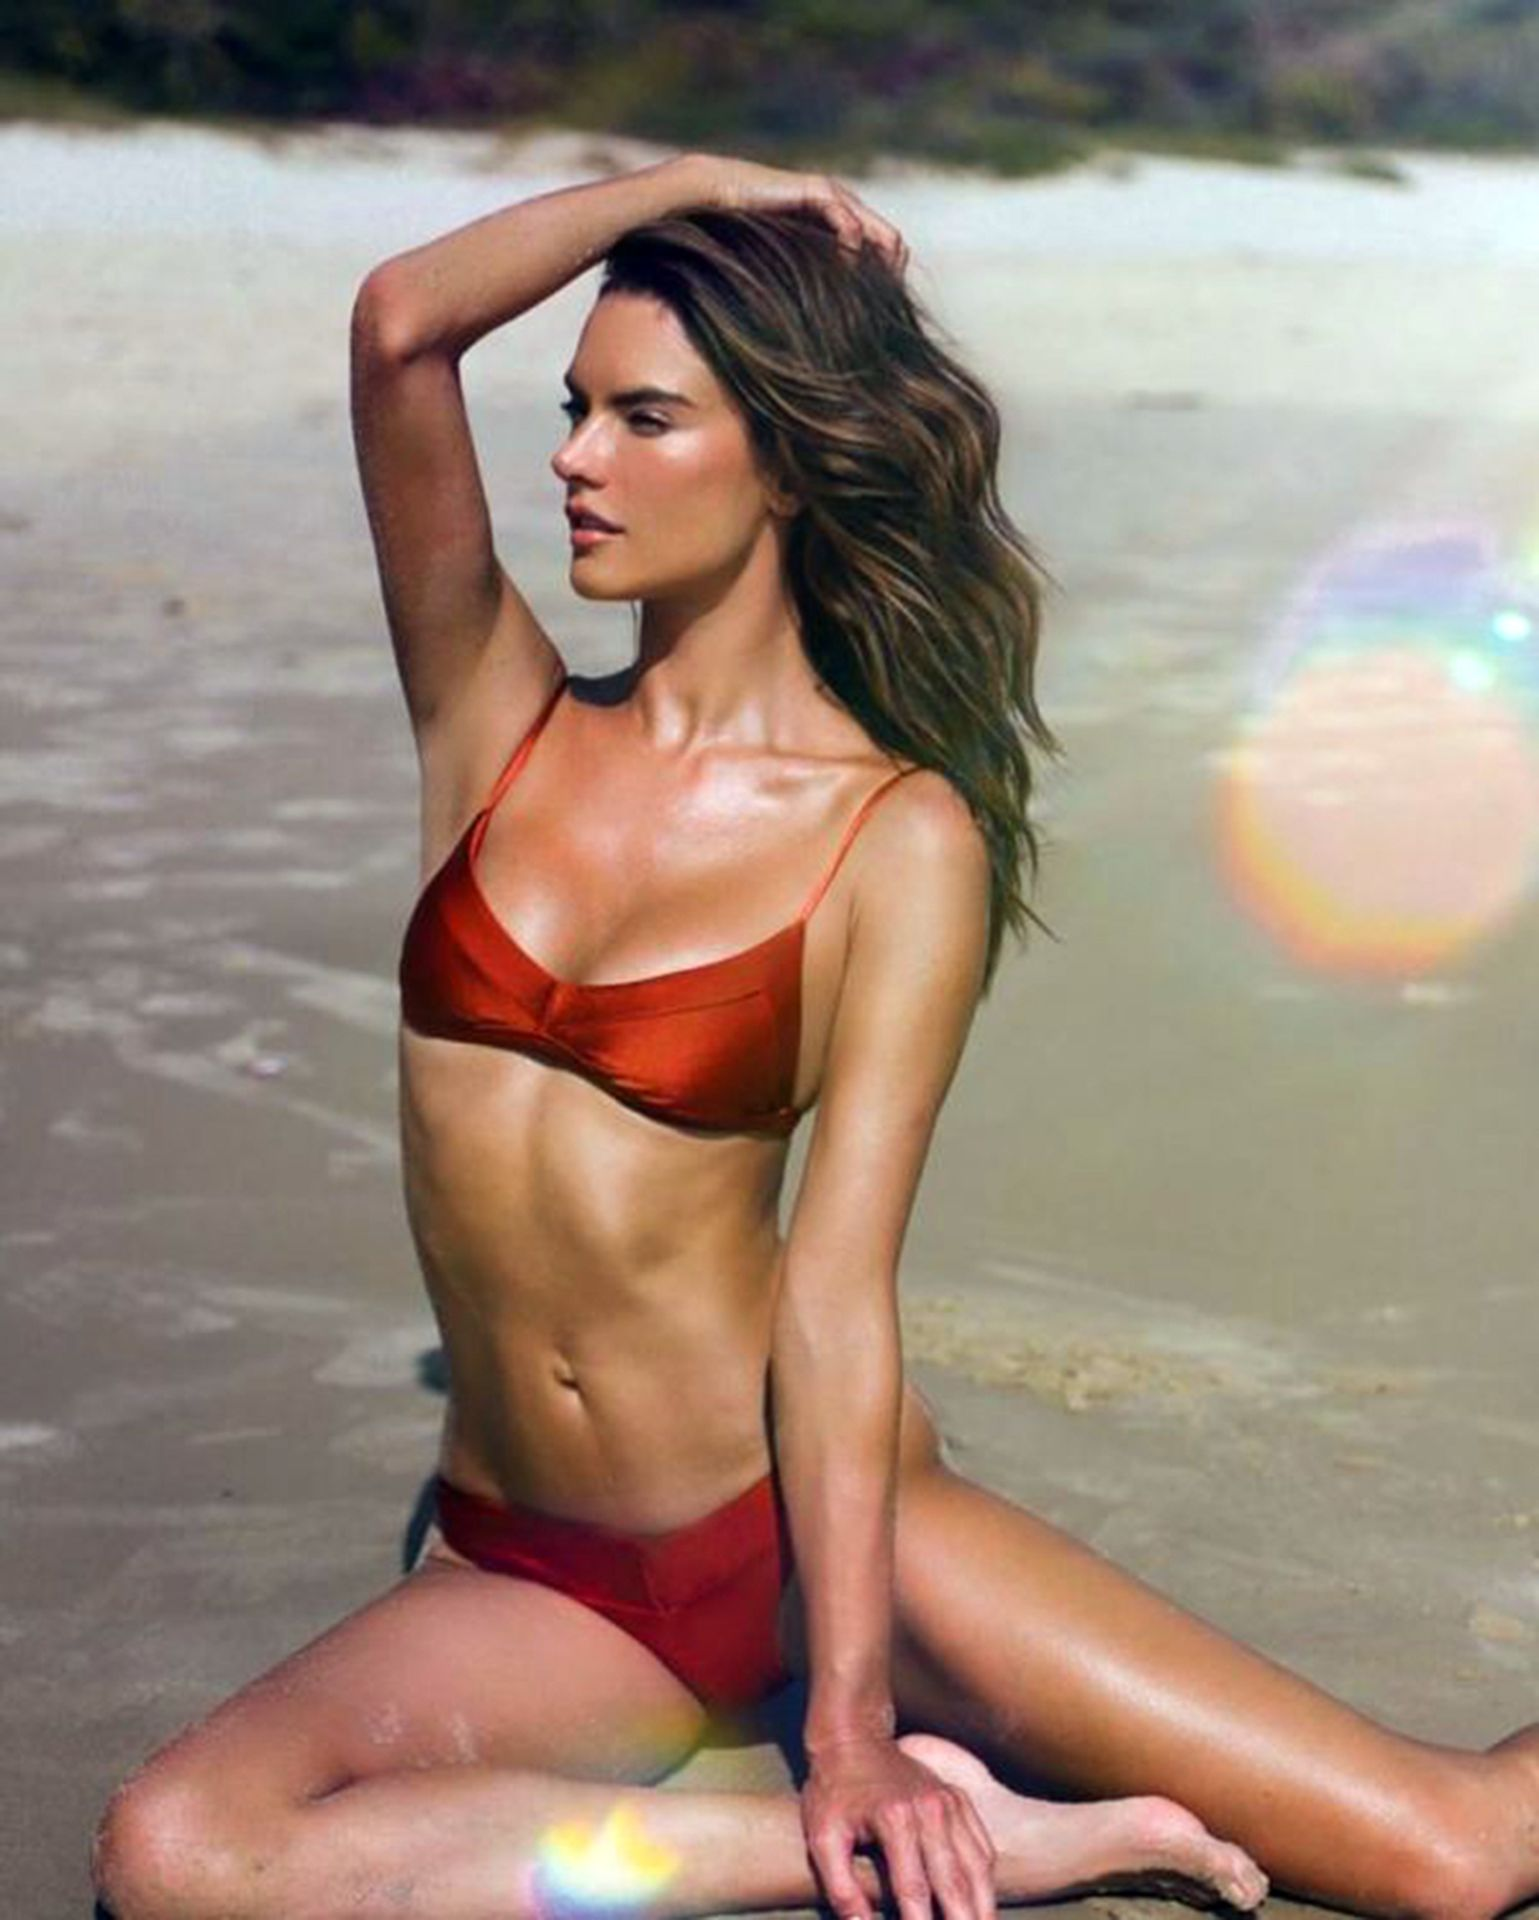 Alessandra Ambrosio Presents The New Campaign Of Her Brand Gal Floripa 0006